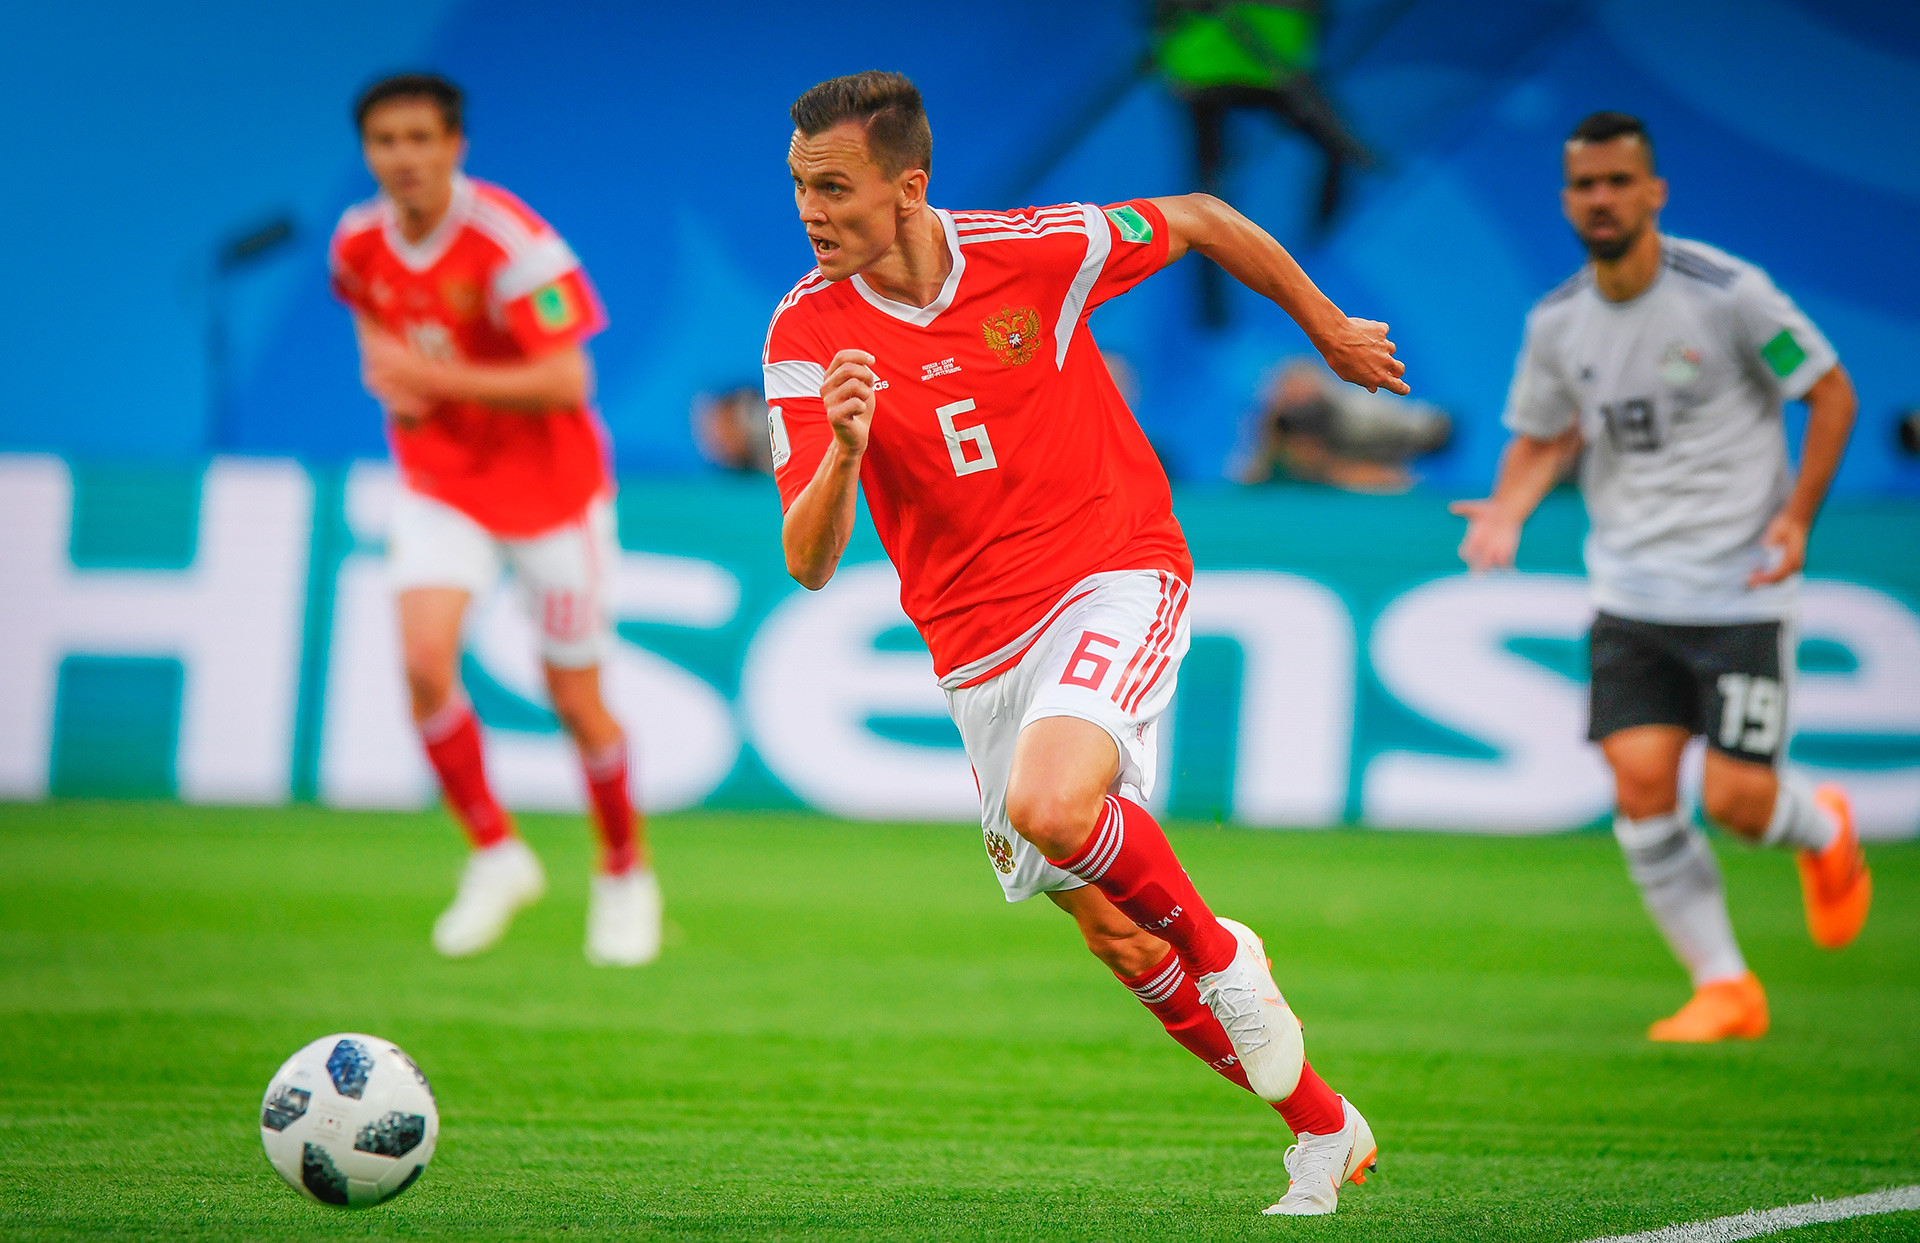 Denis Cheryshev, Team Russia's best striker on the tournament. He scored in matches against Saudi Arabia (twice), Egypt, and Croatia.